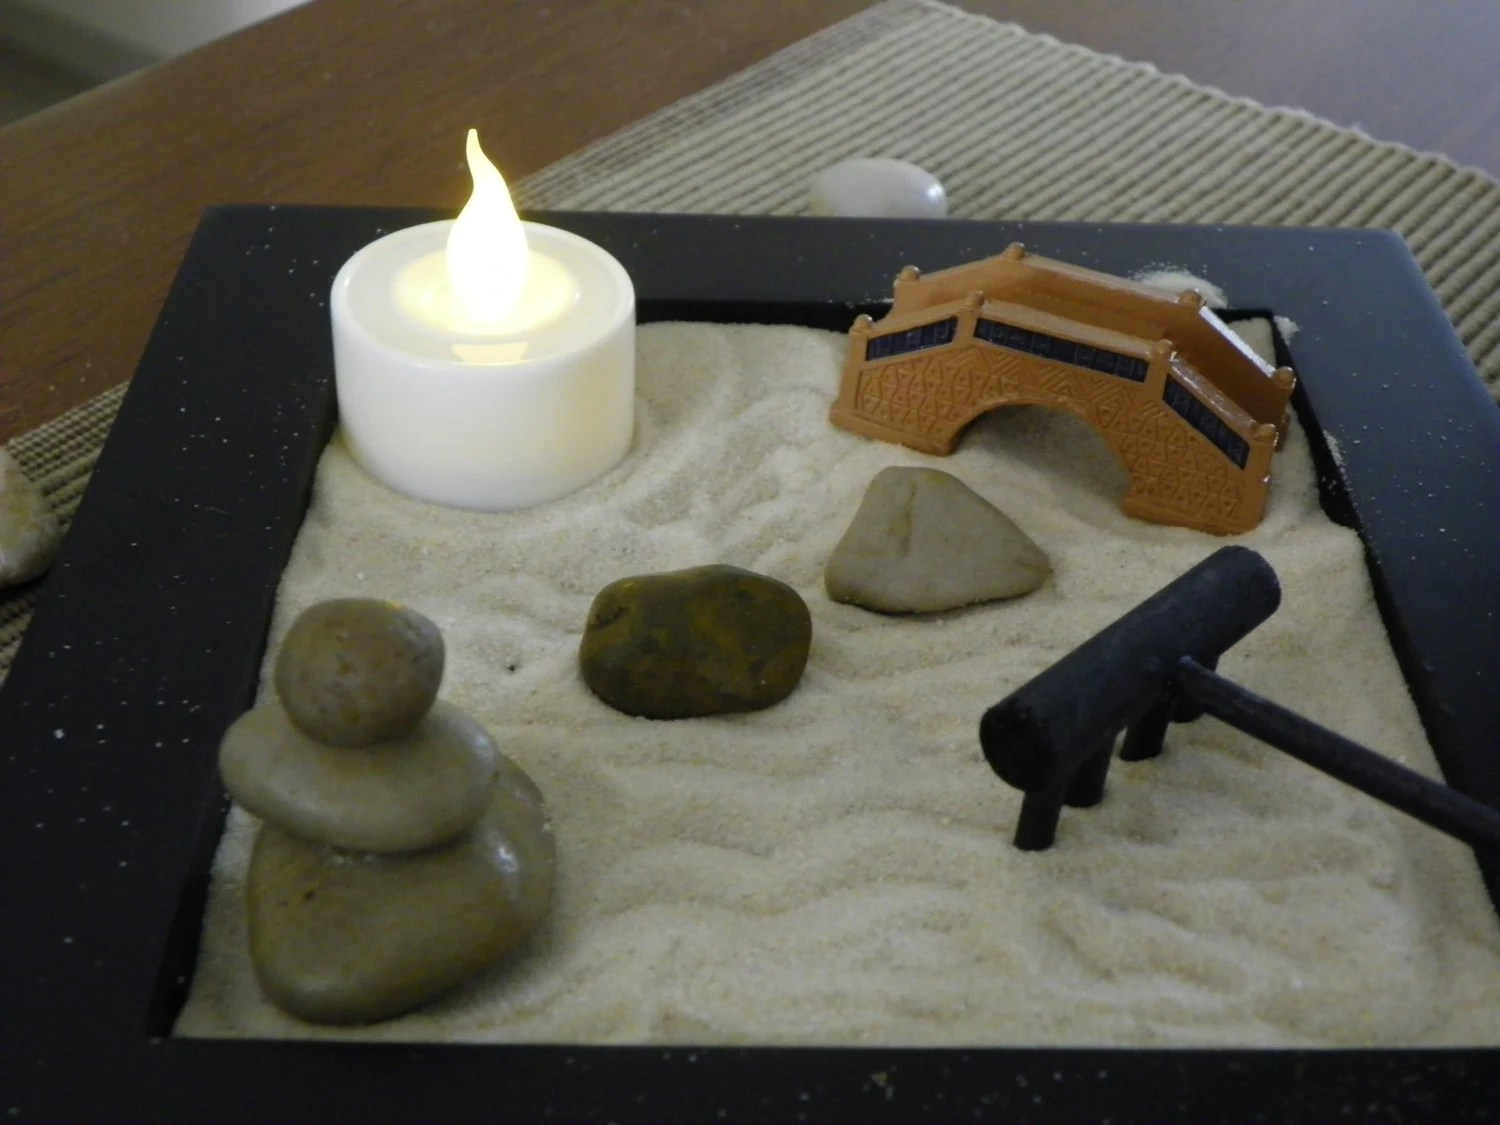 Office Zen Garden Miniature Zen Garden With Hand Balanced Meditation Stones